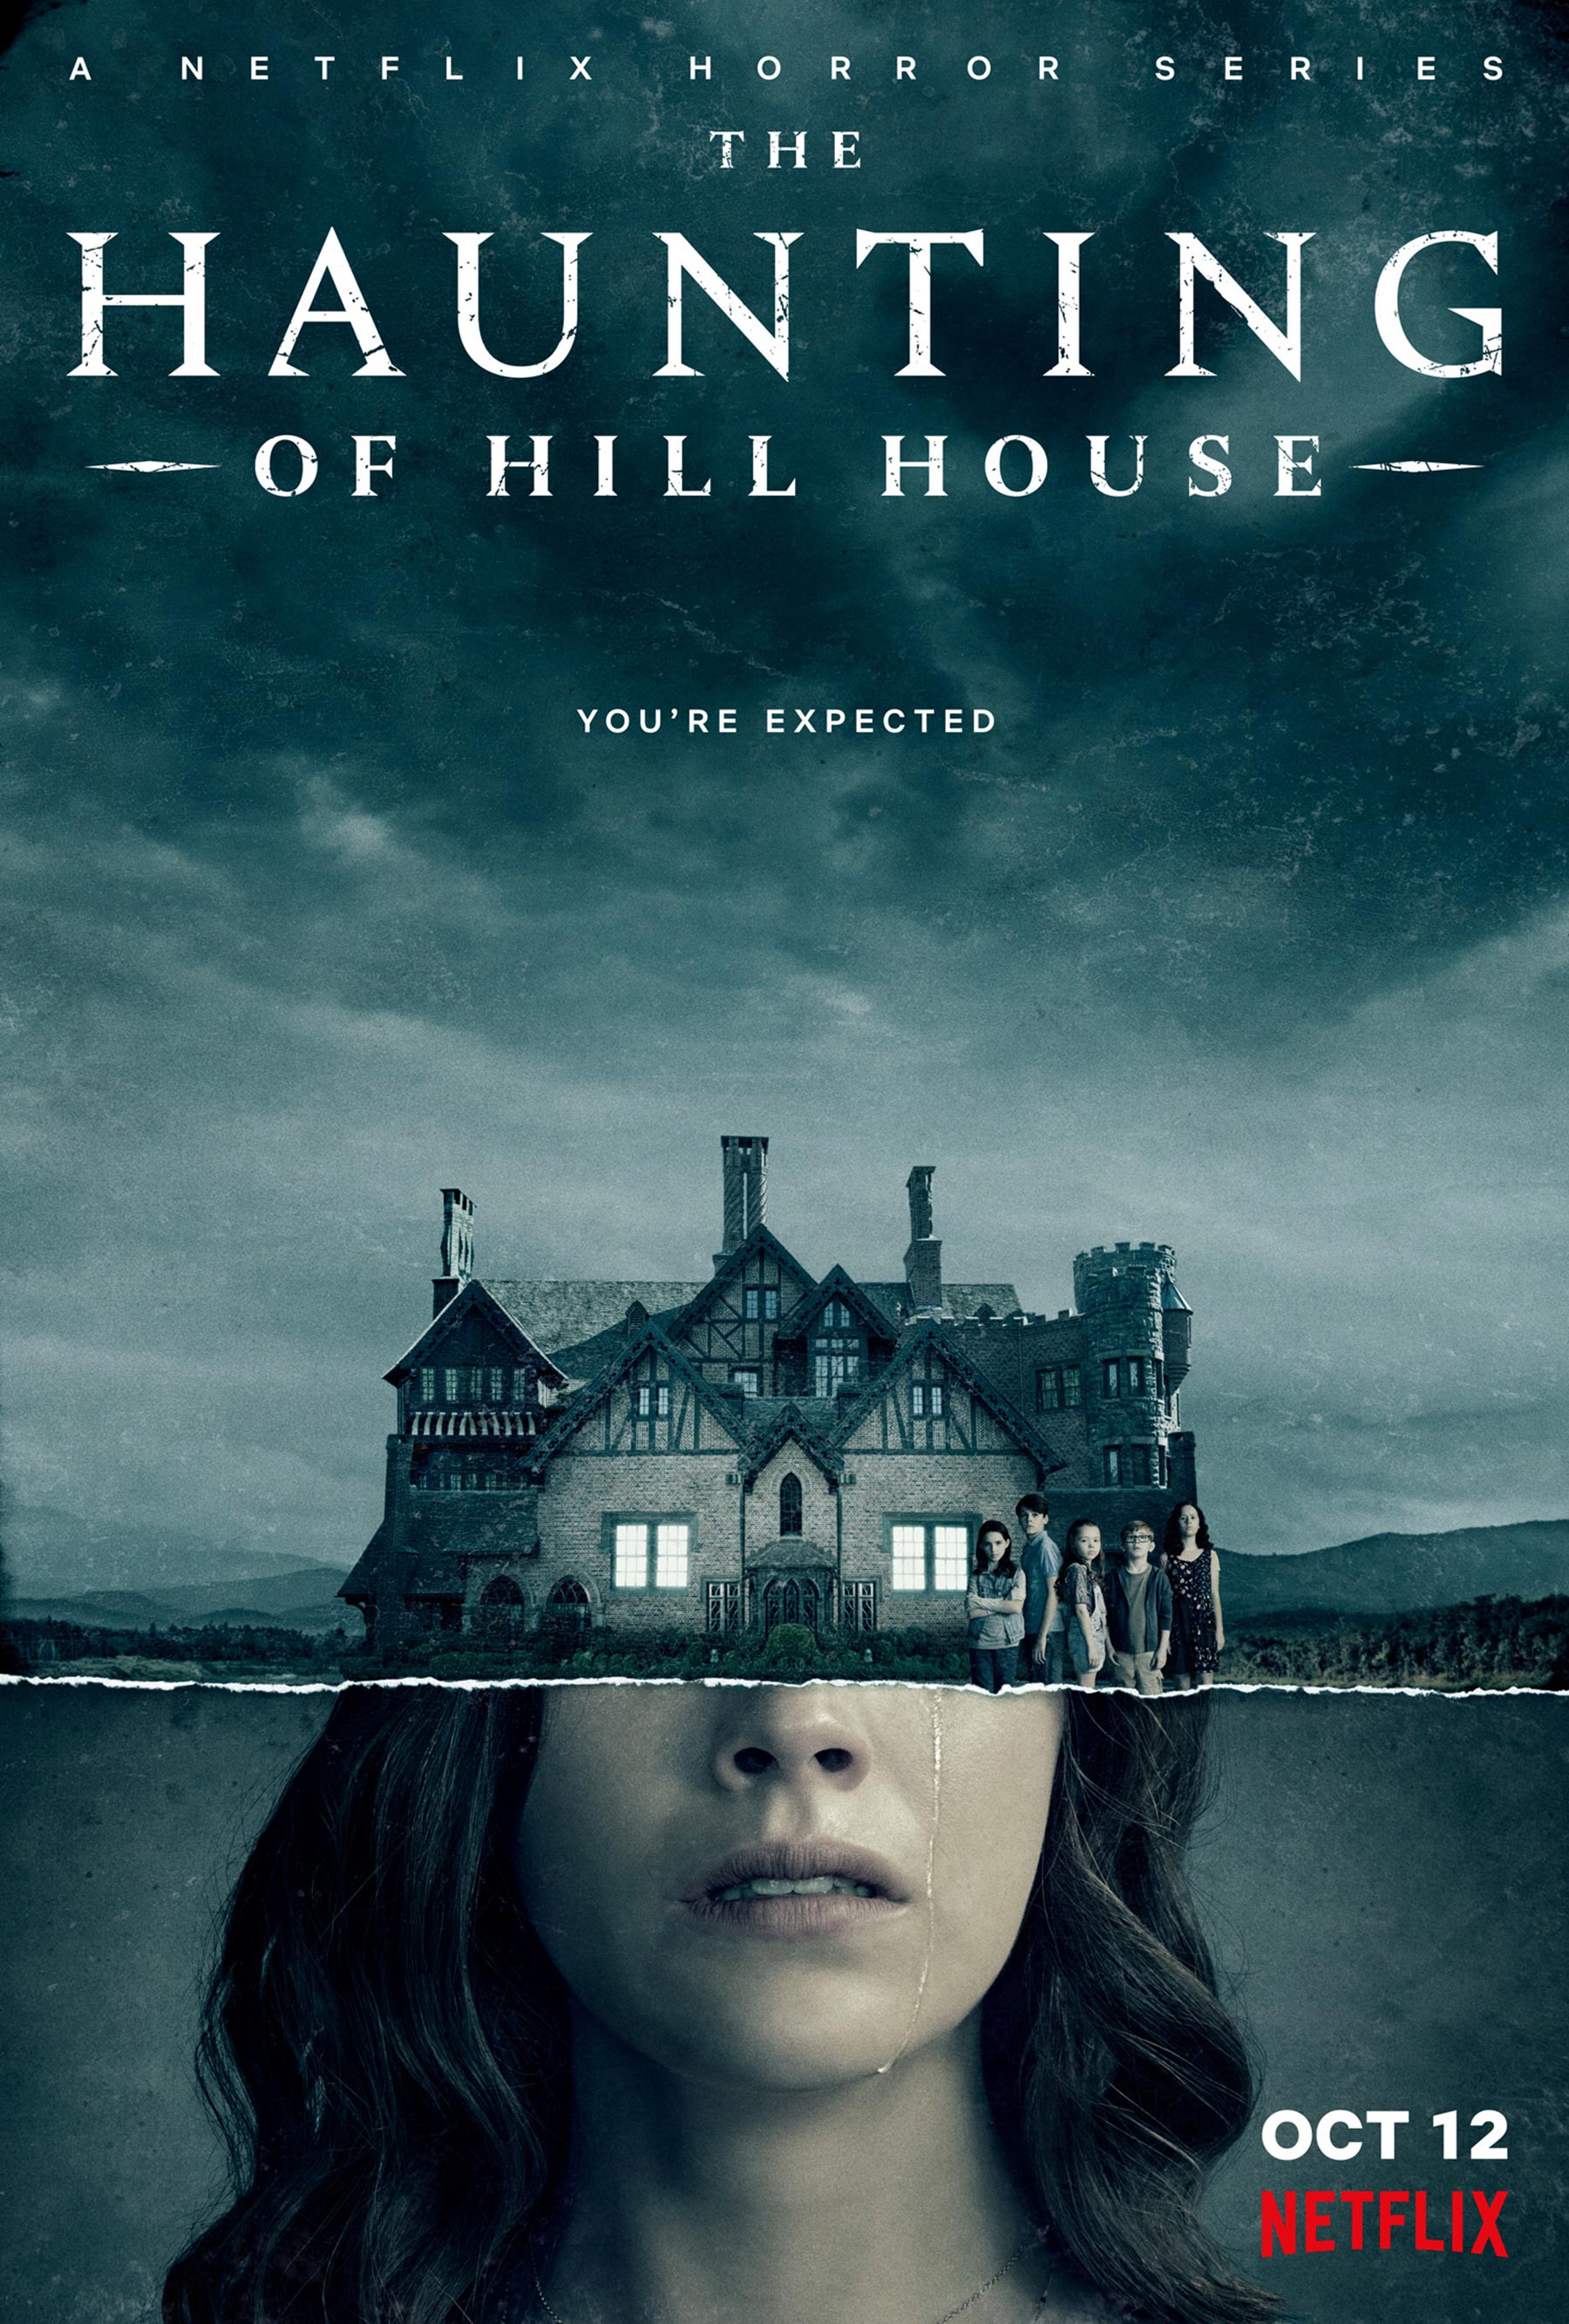 What I Learned Reading The Haunting of Hill House Script